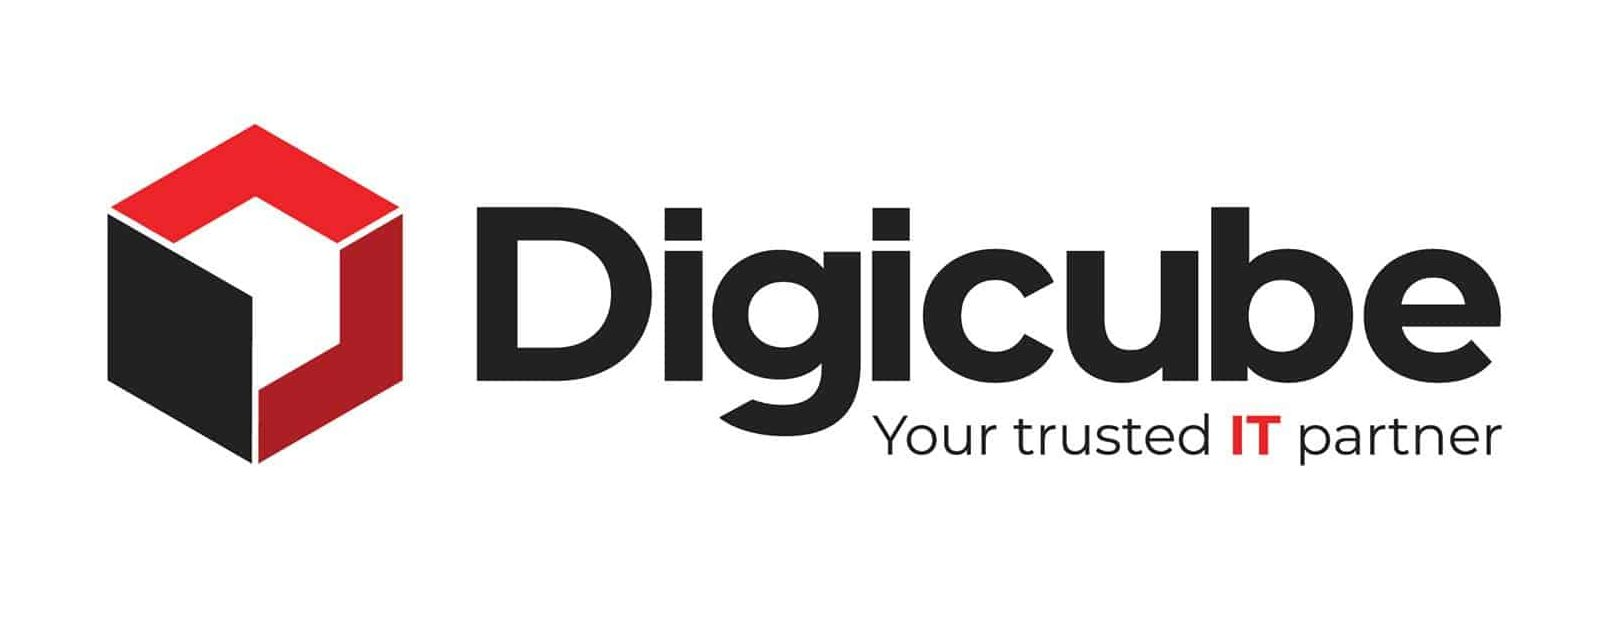 Digicube IT support